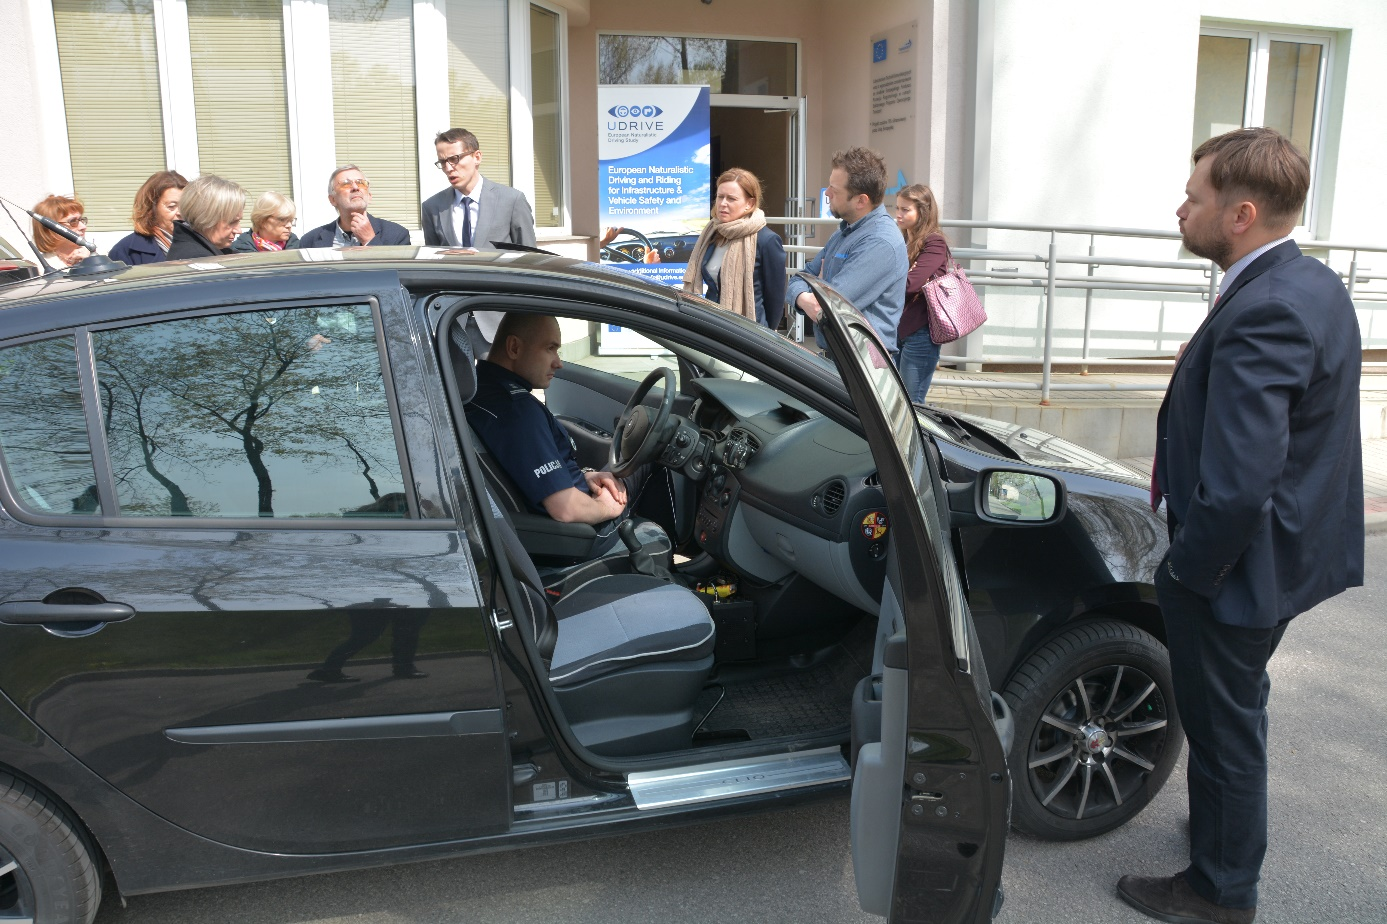 What happened at the UDRIVE regional workshop in Warsaw, Poland?